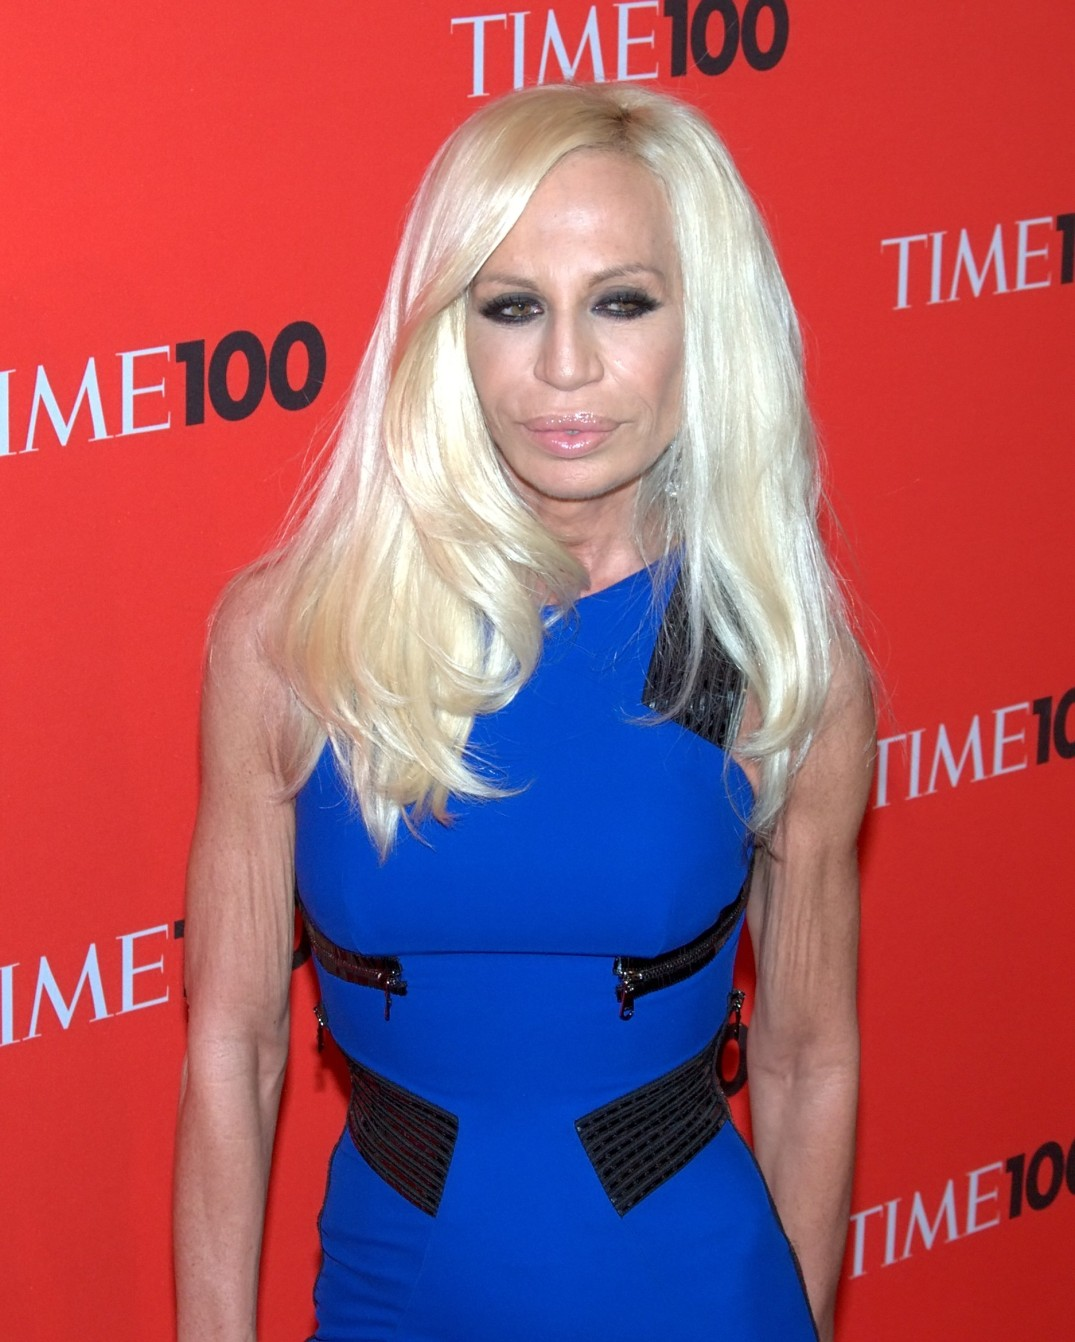 Donatella_Versace_2010_Time_Shankbone_popfashionews